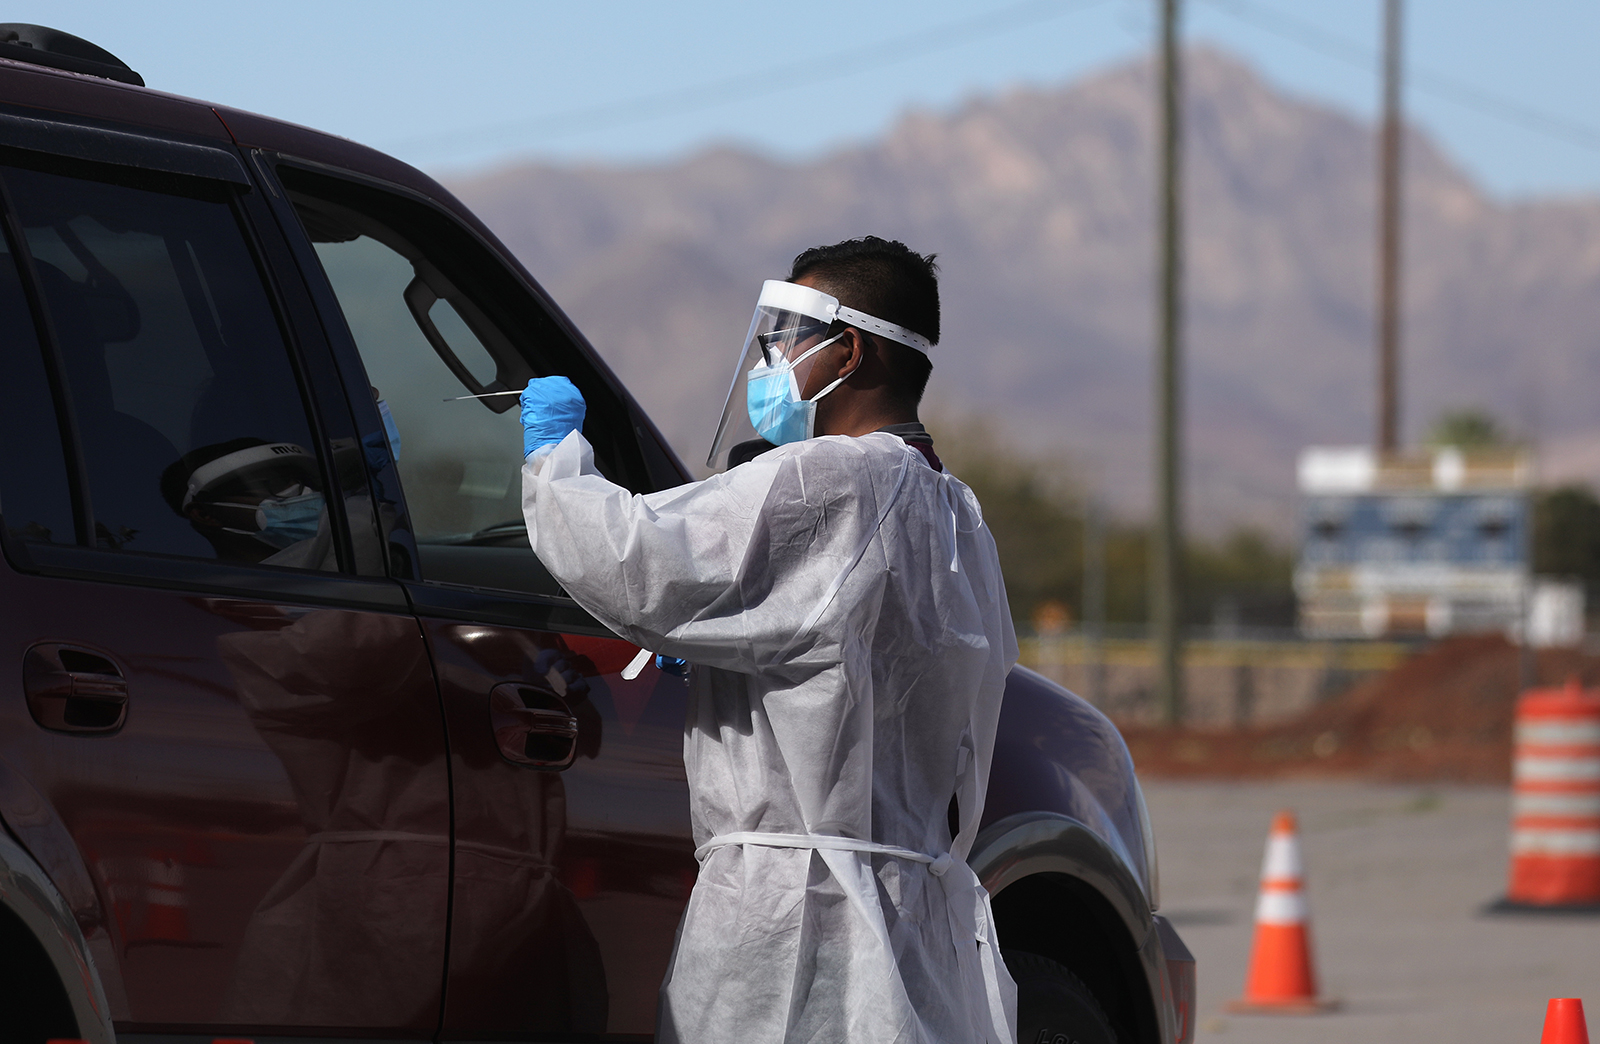 A frontline healthcare worker administers a swab test at a Covid-19 testing site amid a surge of coronavirus cases in El Paso, Texas, on November 13.